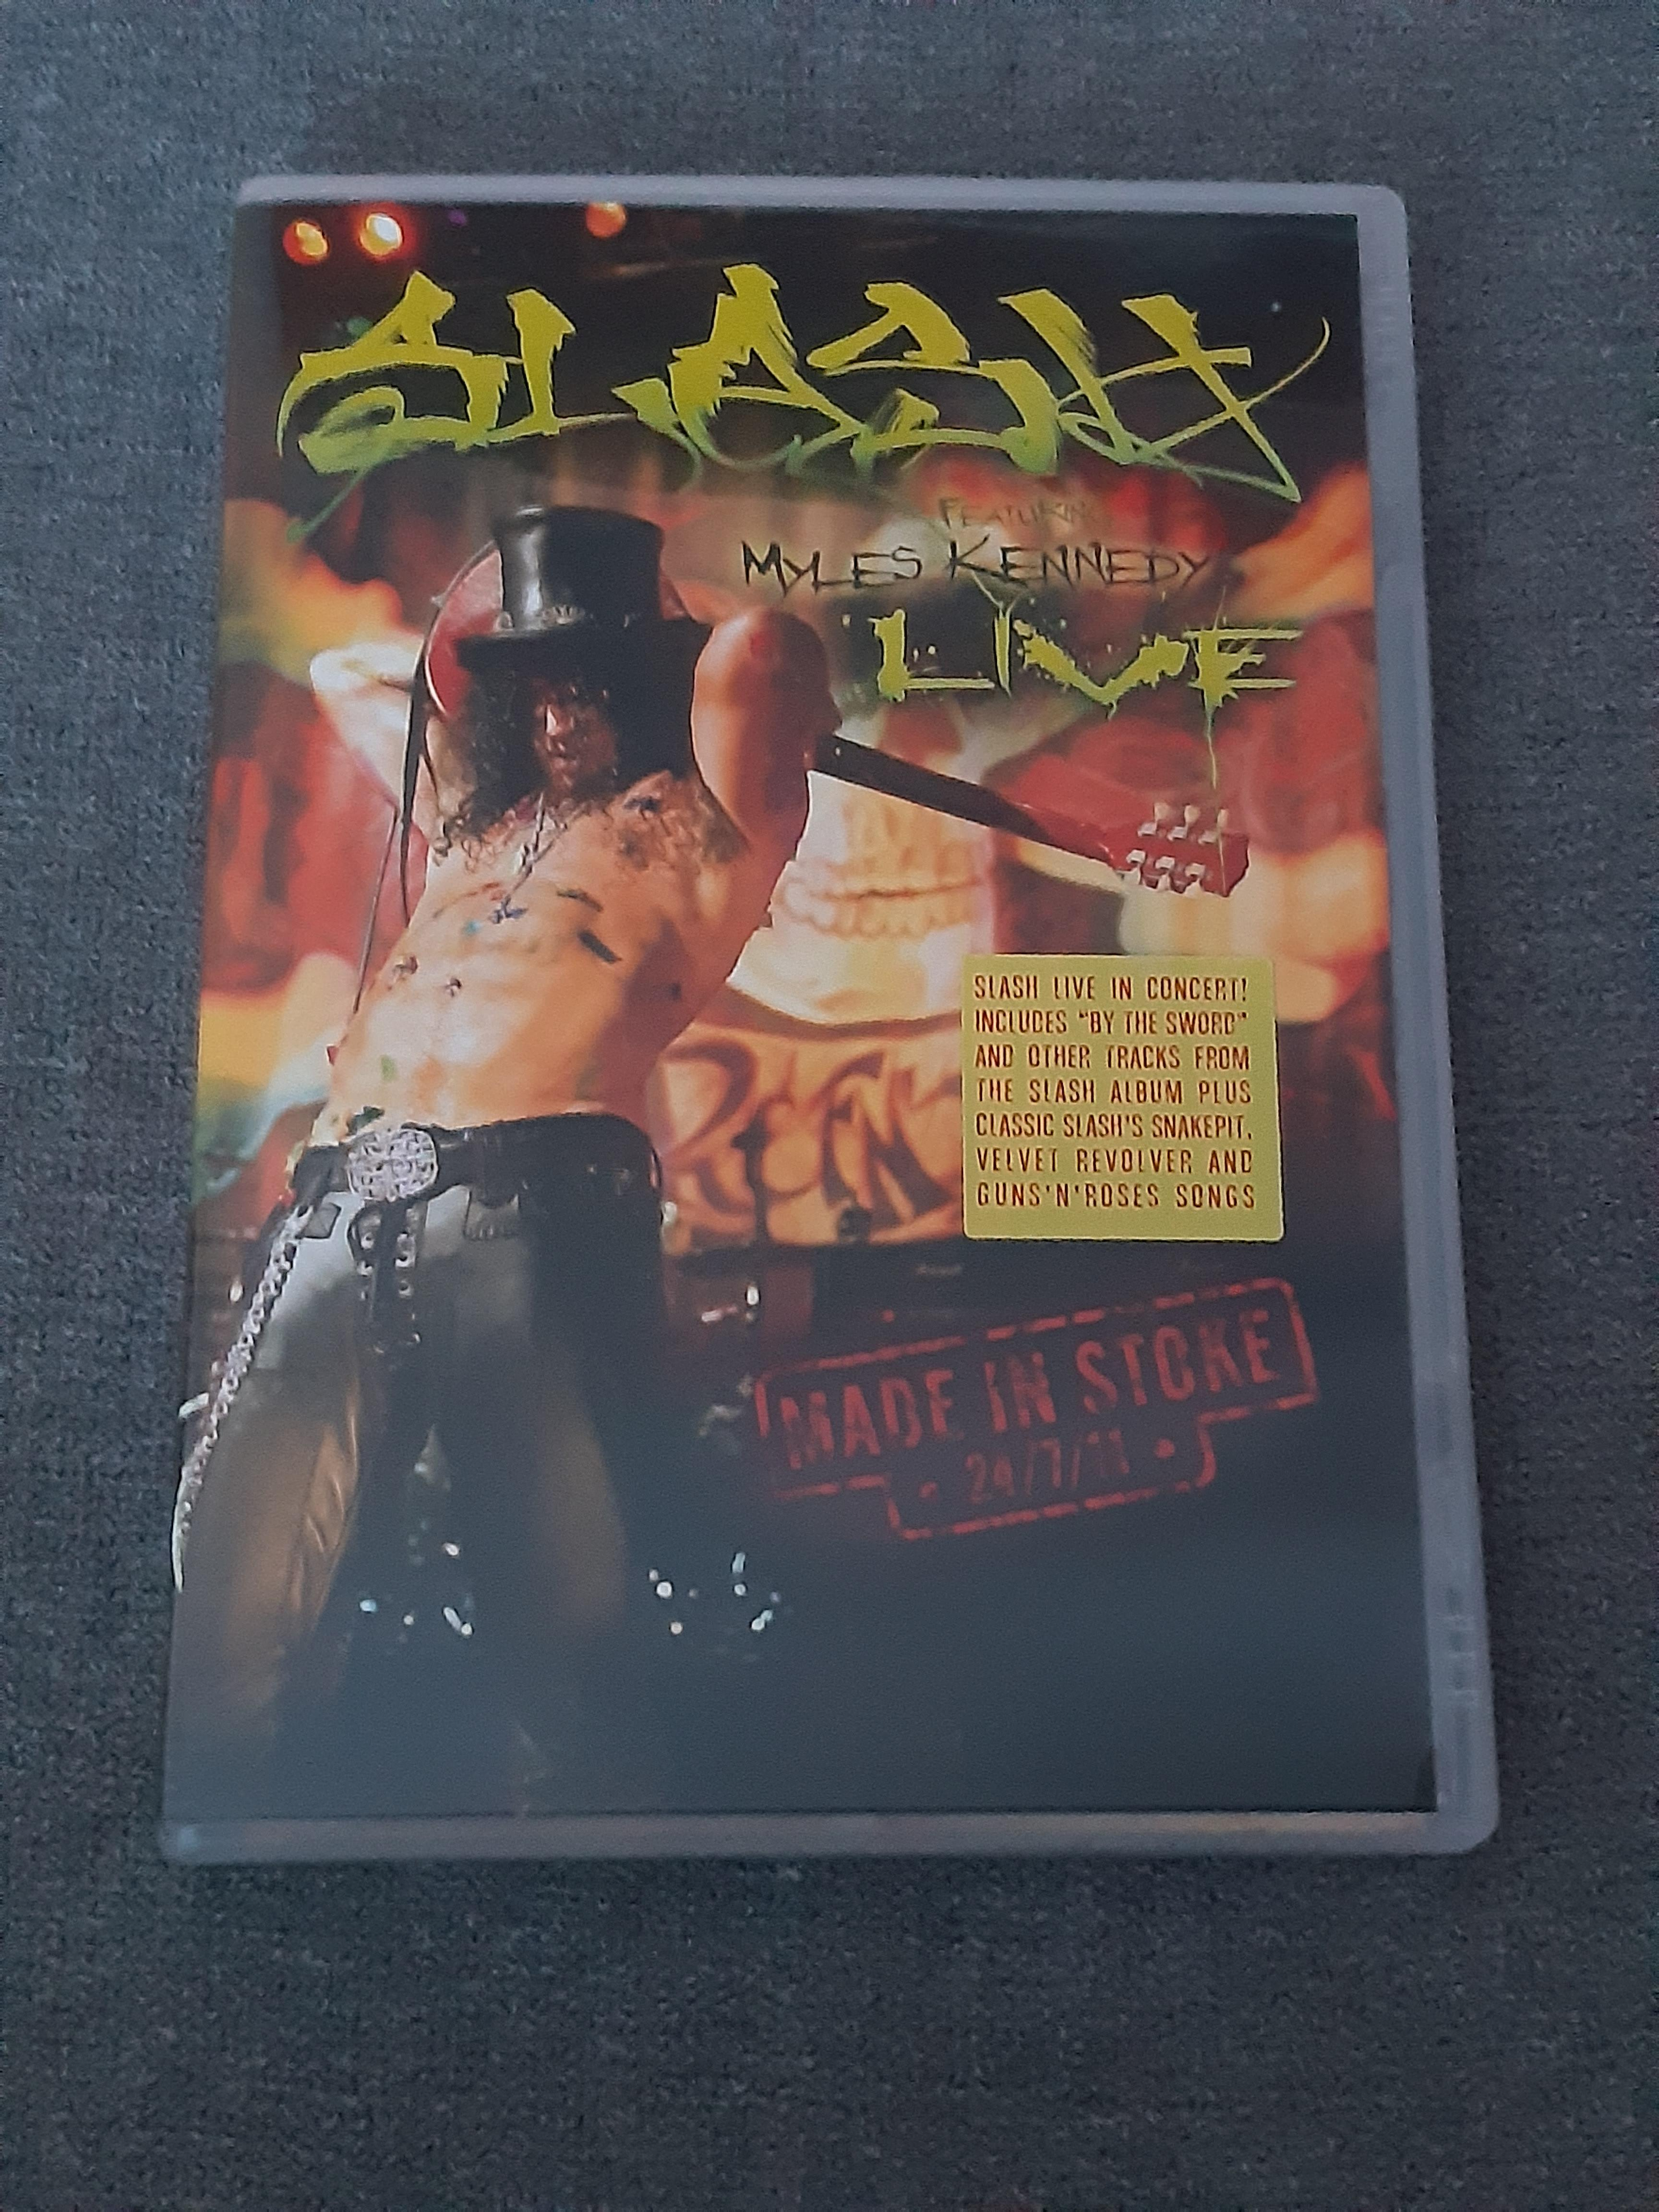 Slash Featuring Myles Kennedy - Live, Made In Stoke 24.7.11 - DVD (käytetty)